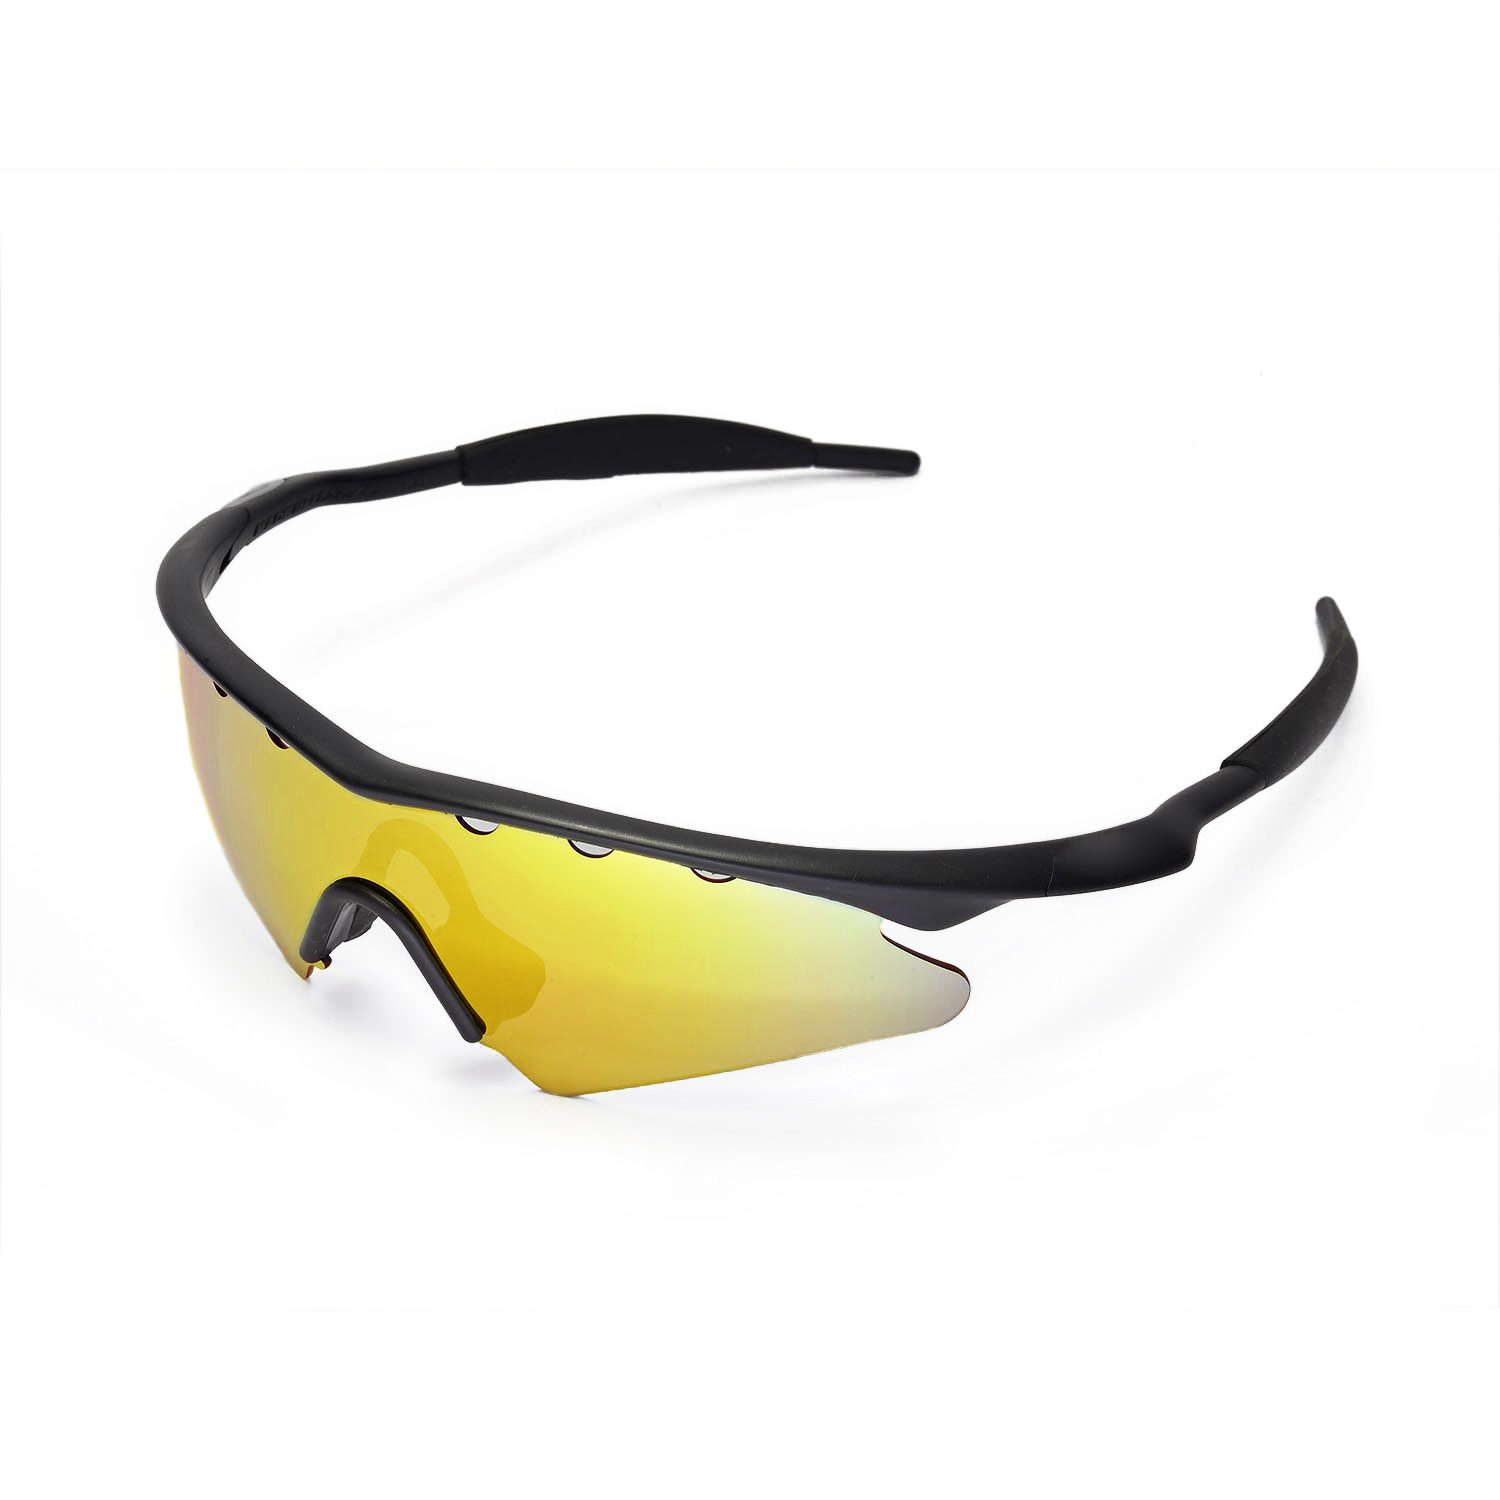 ff9856405da2 Oakley M Frame Sweep Lenses Ebay